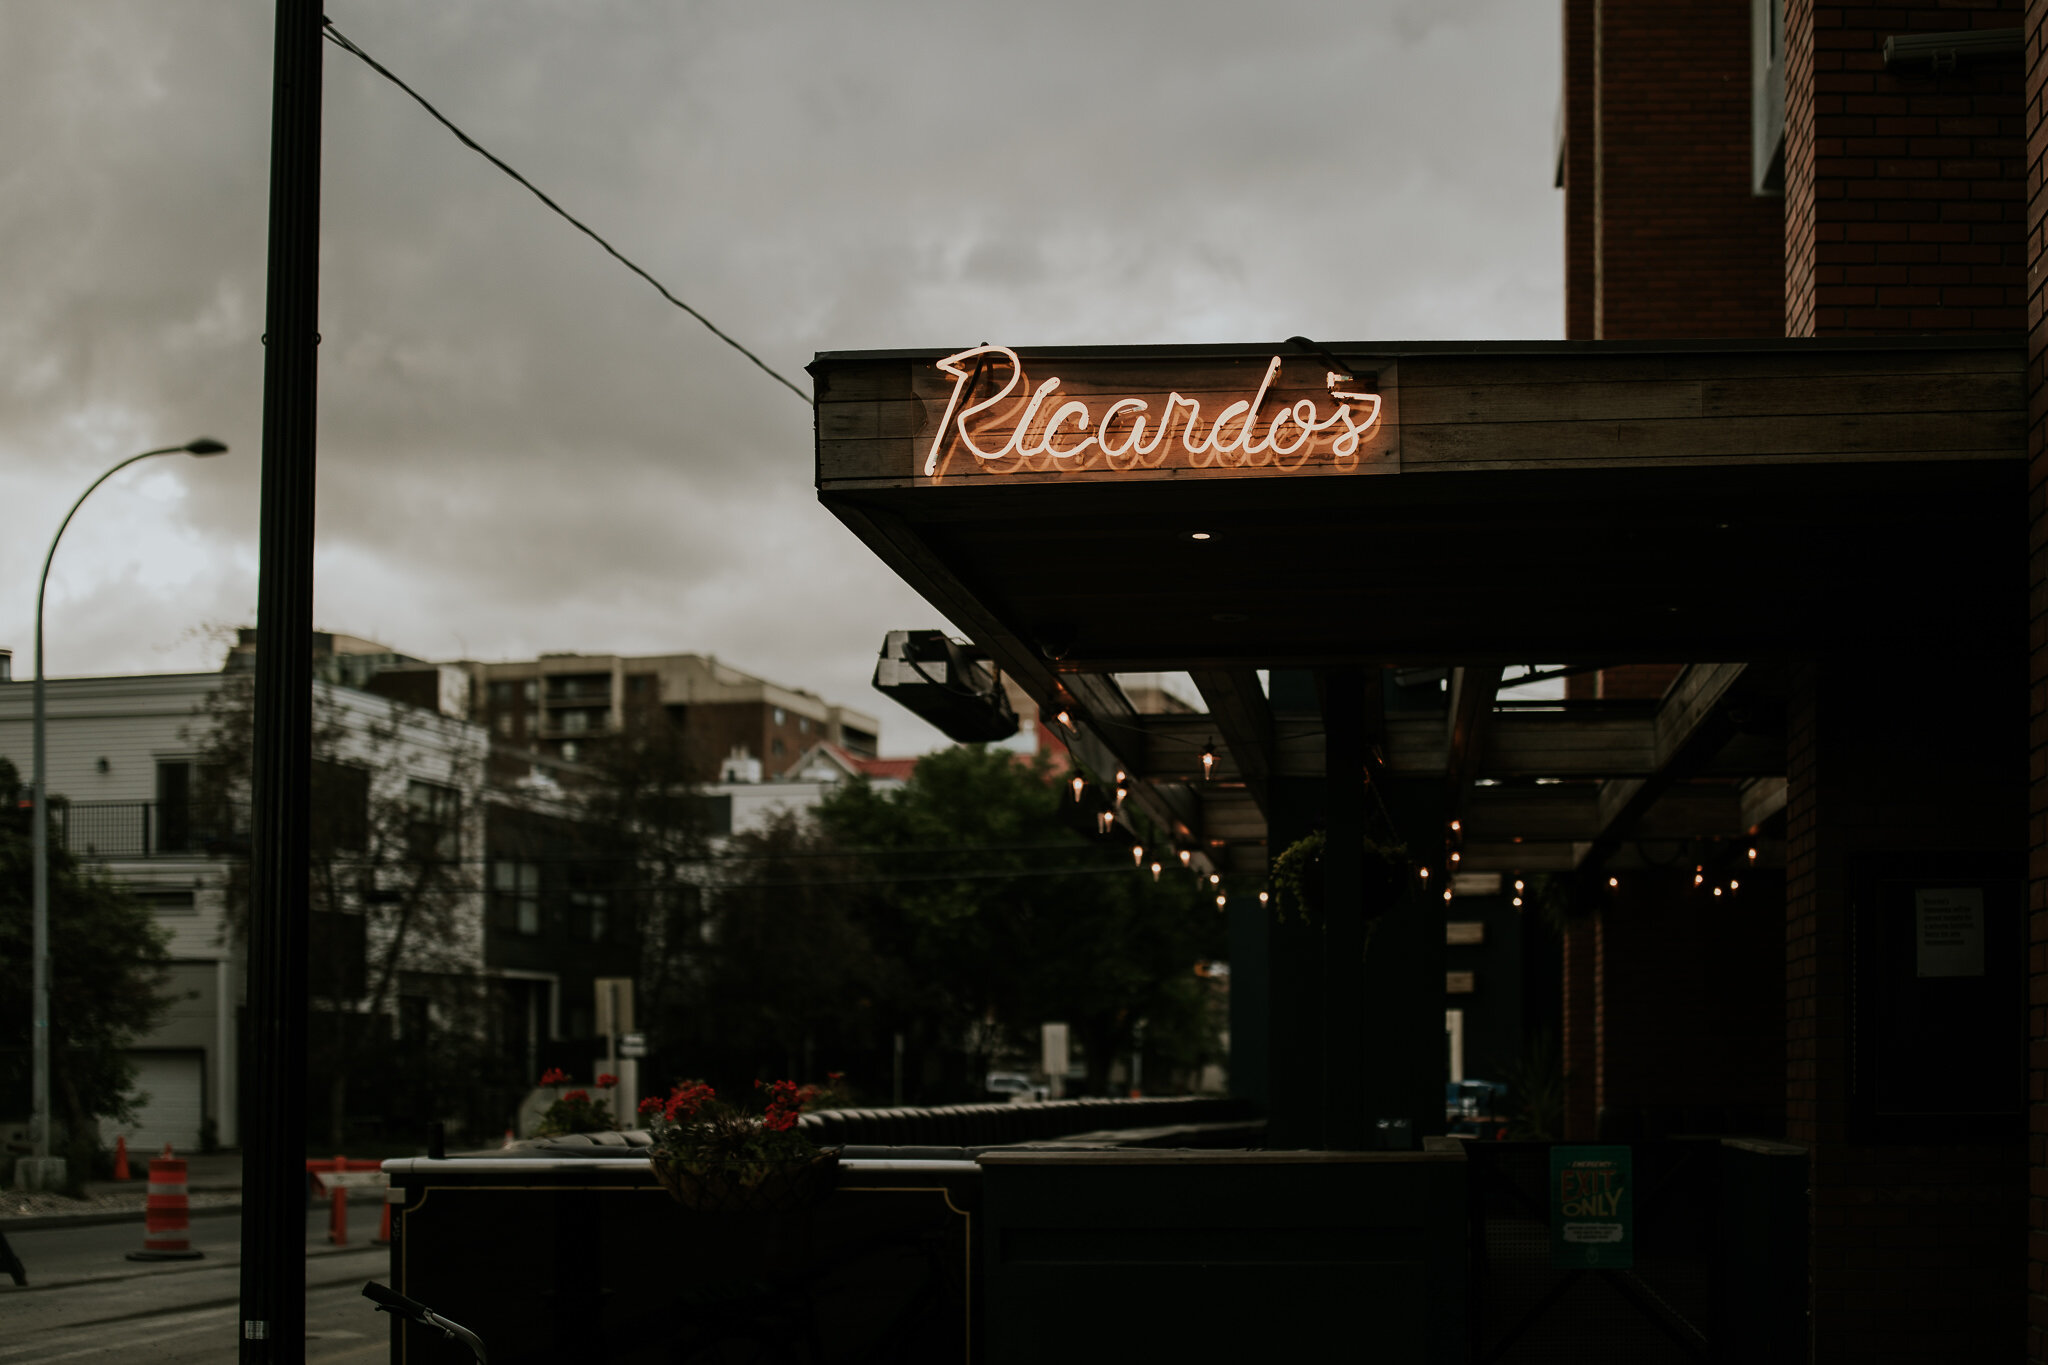 Ricardo's Hideaway sign lit up for intimate wedding reception while storm clouds roll in.